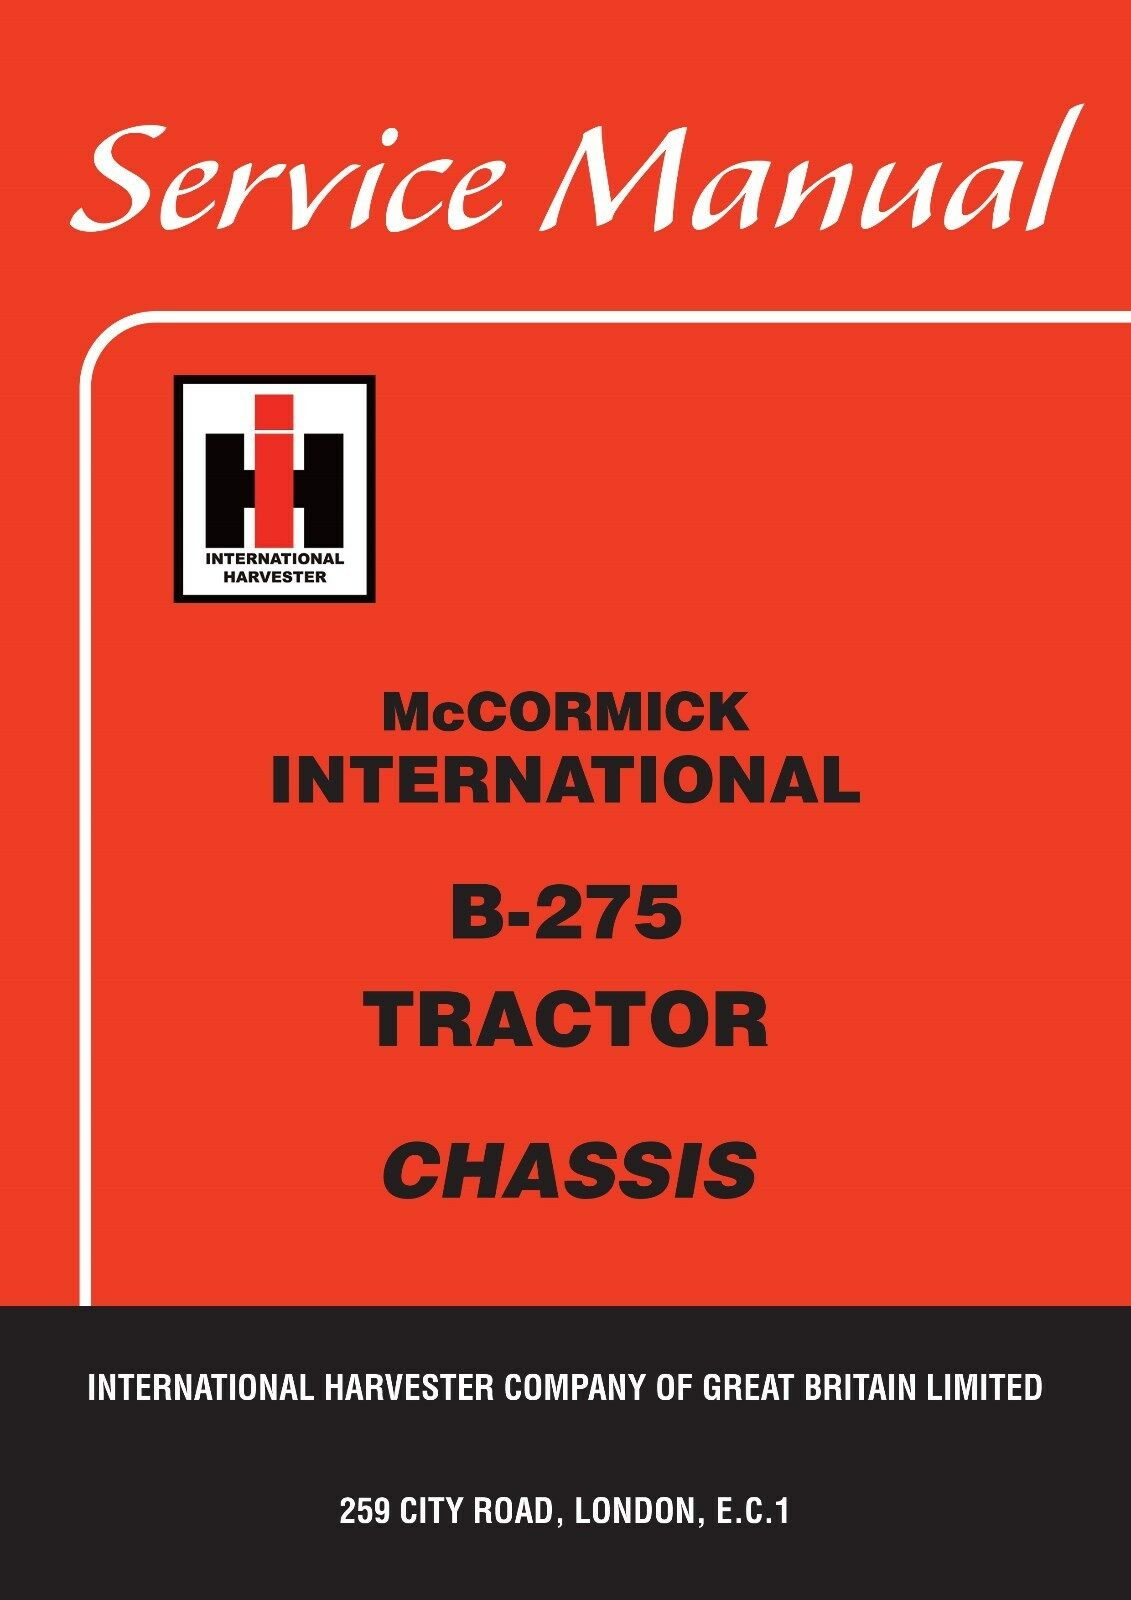 McCormick International B275 Tractor Service Manual 1 of 1 See More